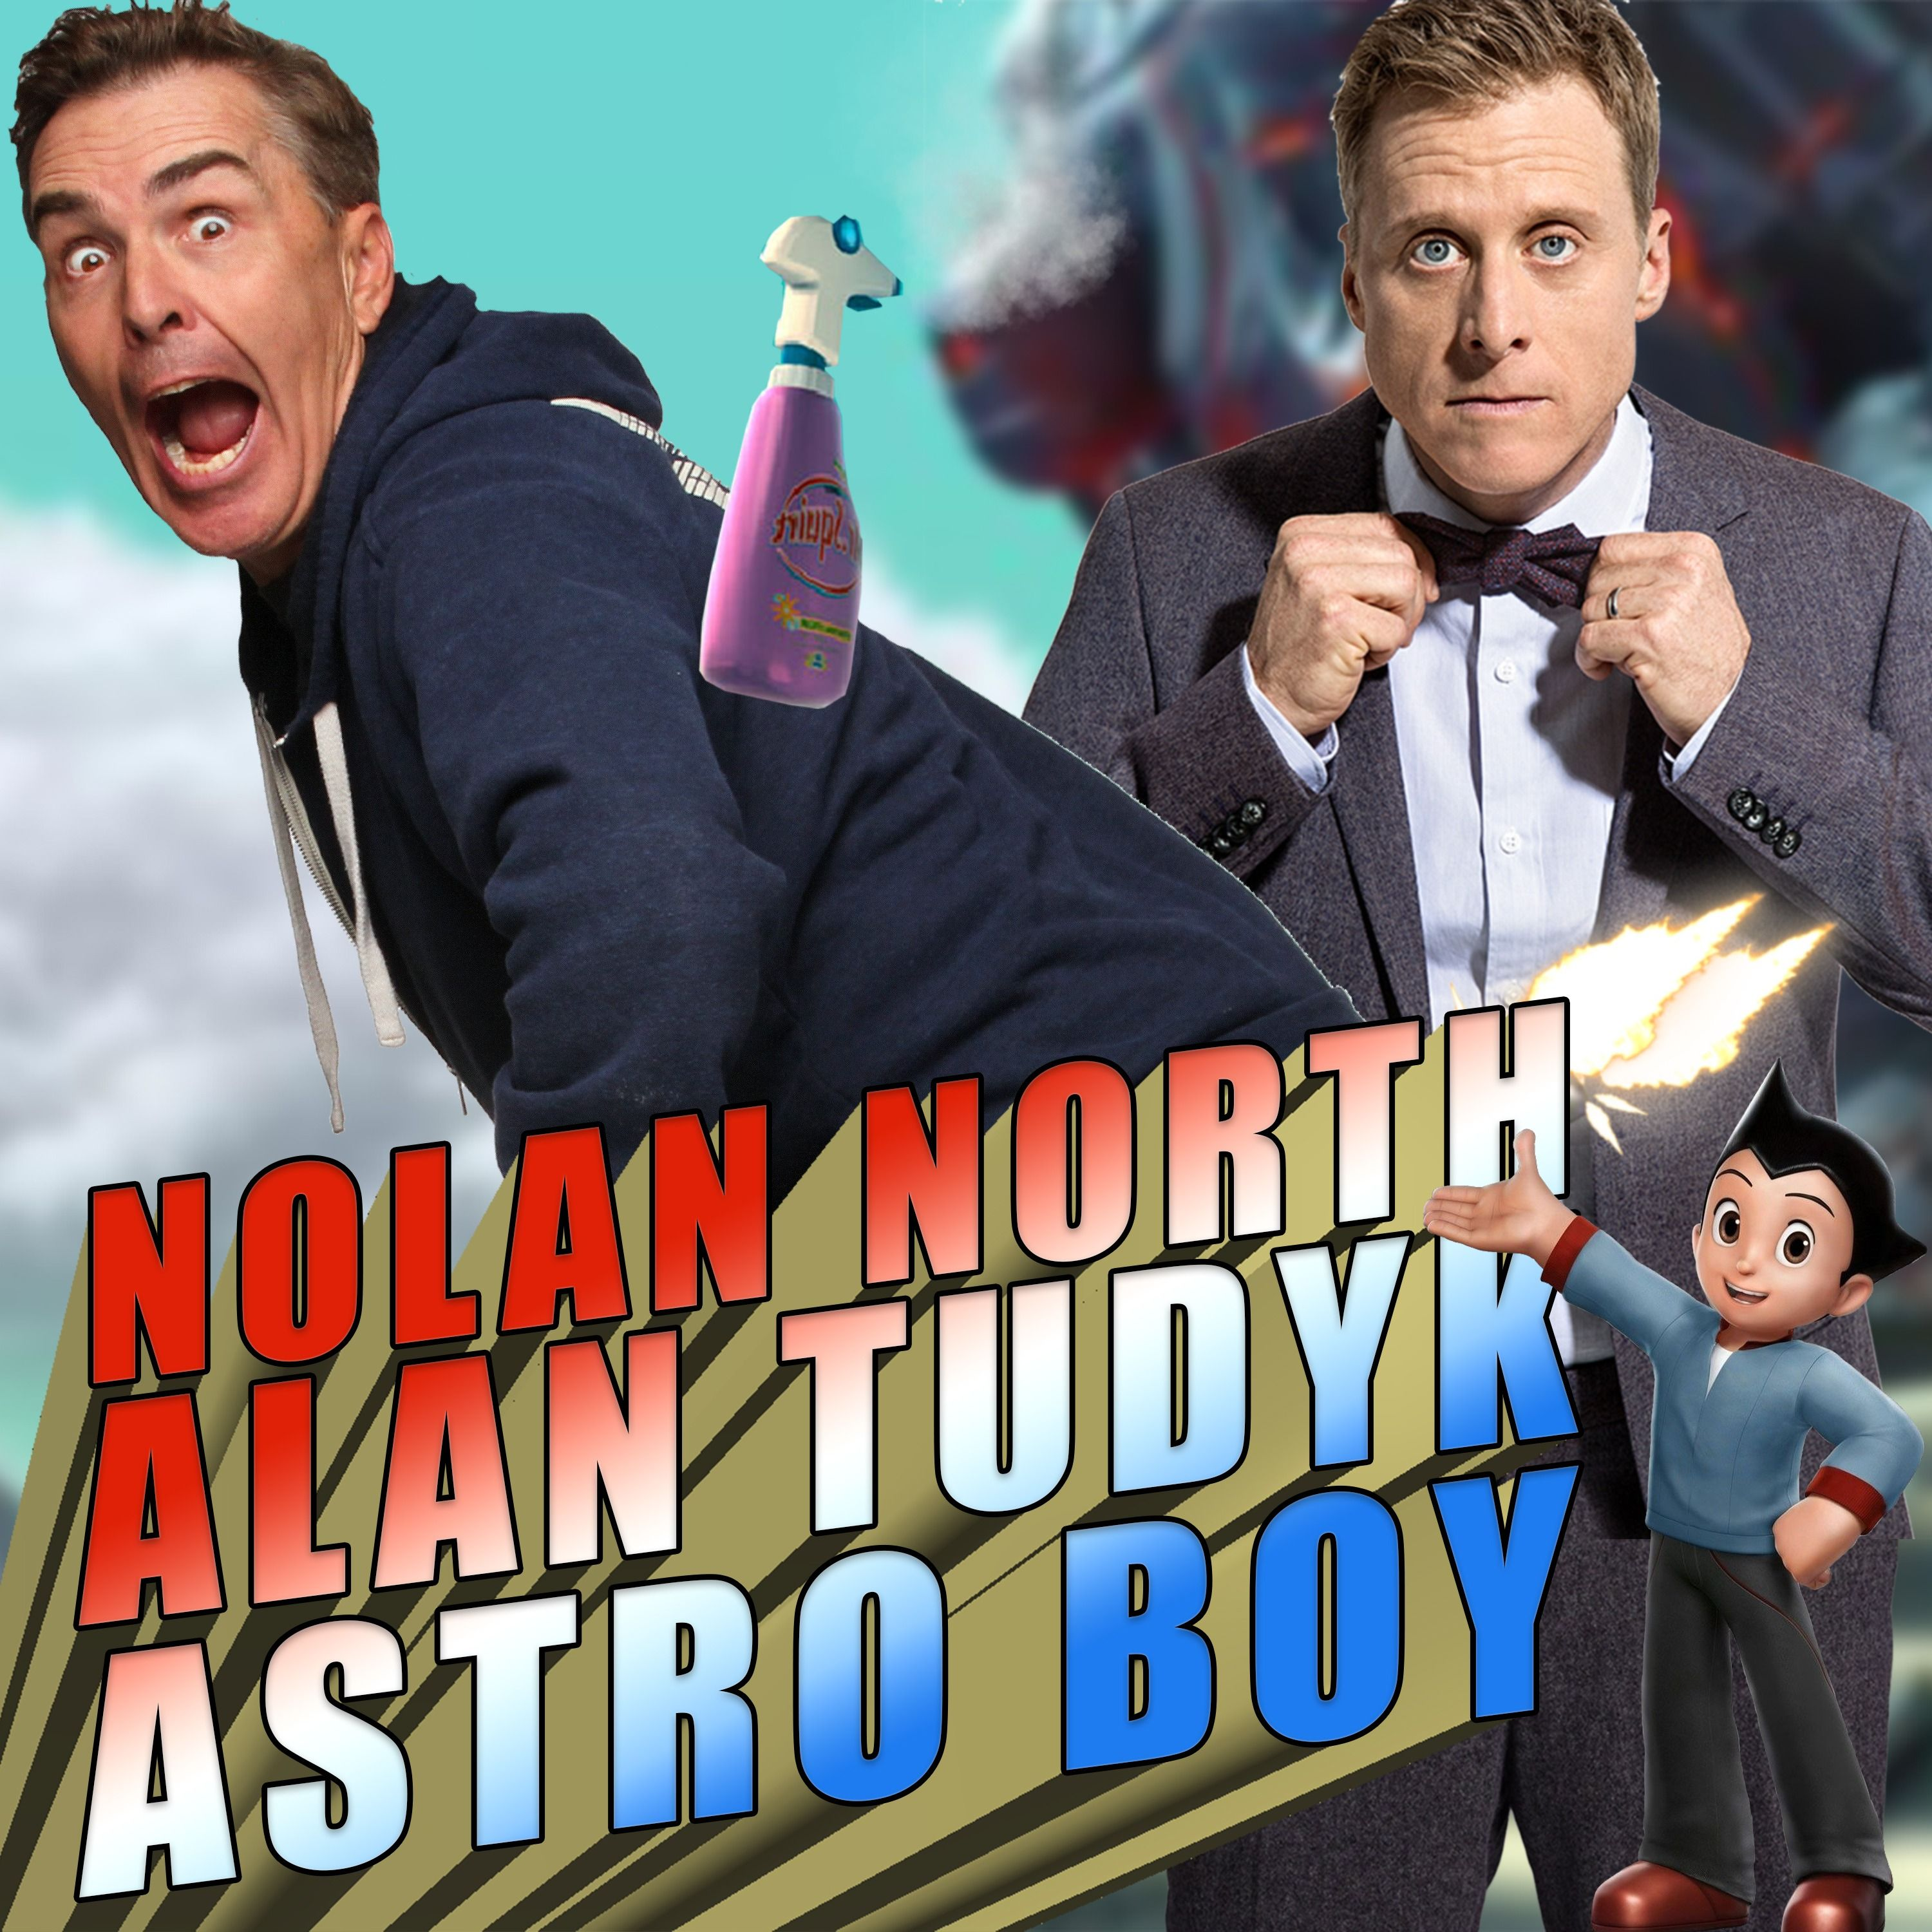 Nolan North, Alan Tudyk, and Astro Boy | RETRO REPLAY